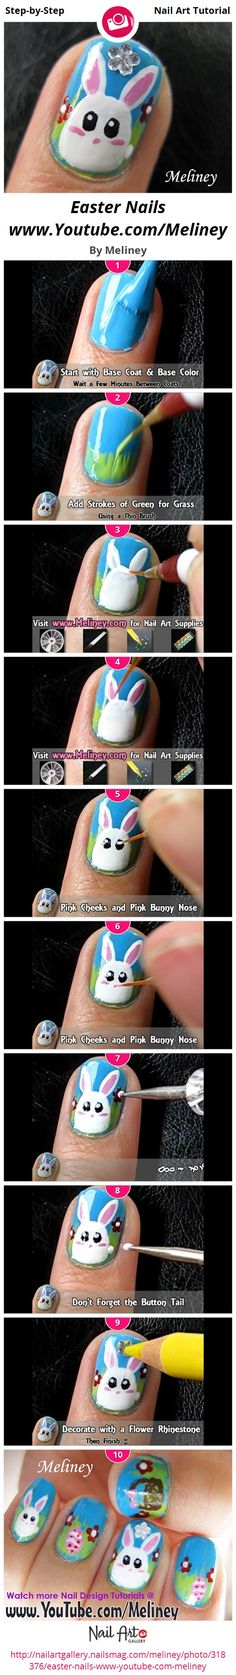 Easter Nails  Step-by-Step Tutorials